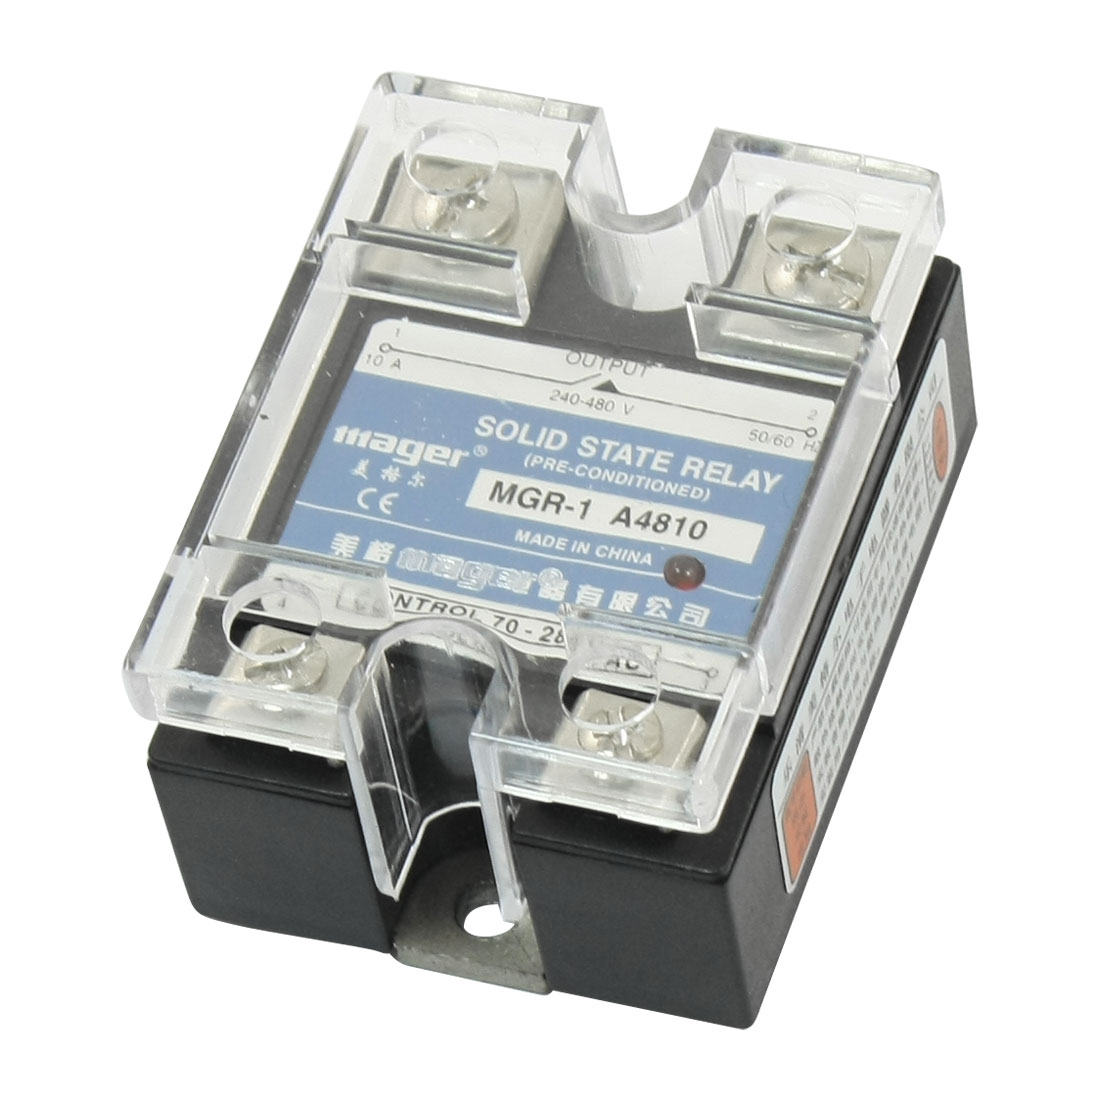 AC70-280V to AC240-280V 10A 4 Screw Terminal Rectangle One Phase SSR Solid State Relay w Clear Cover